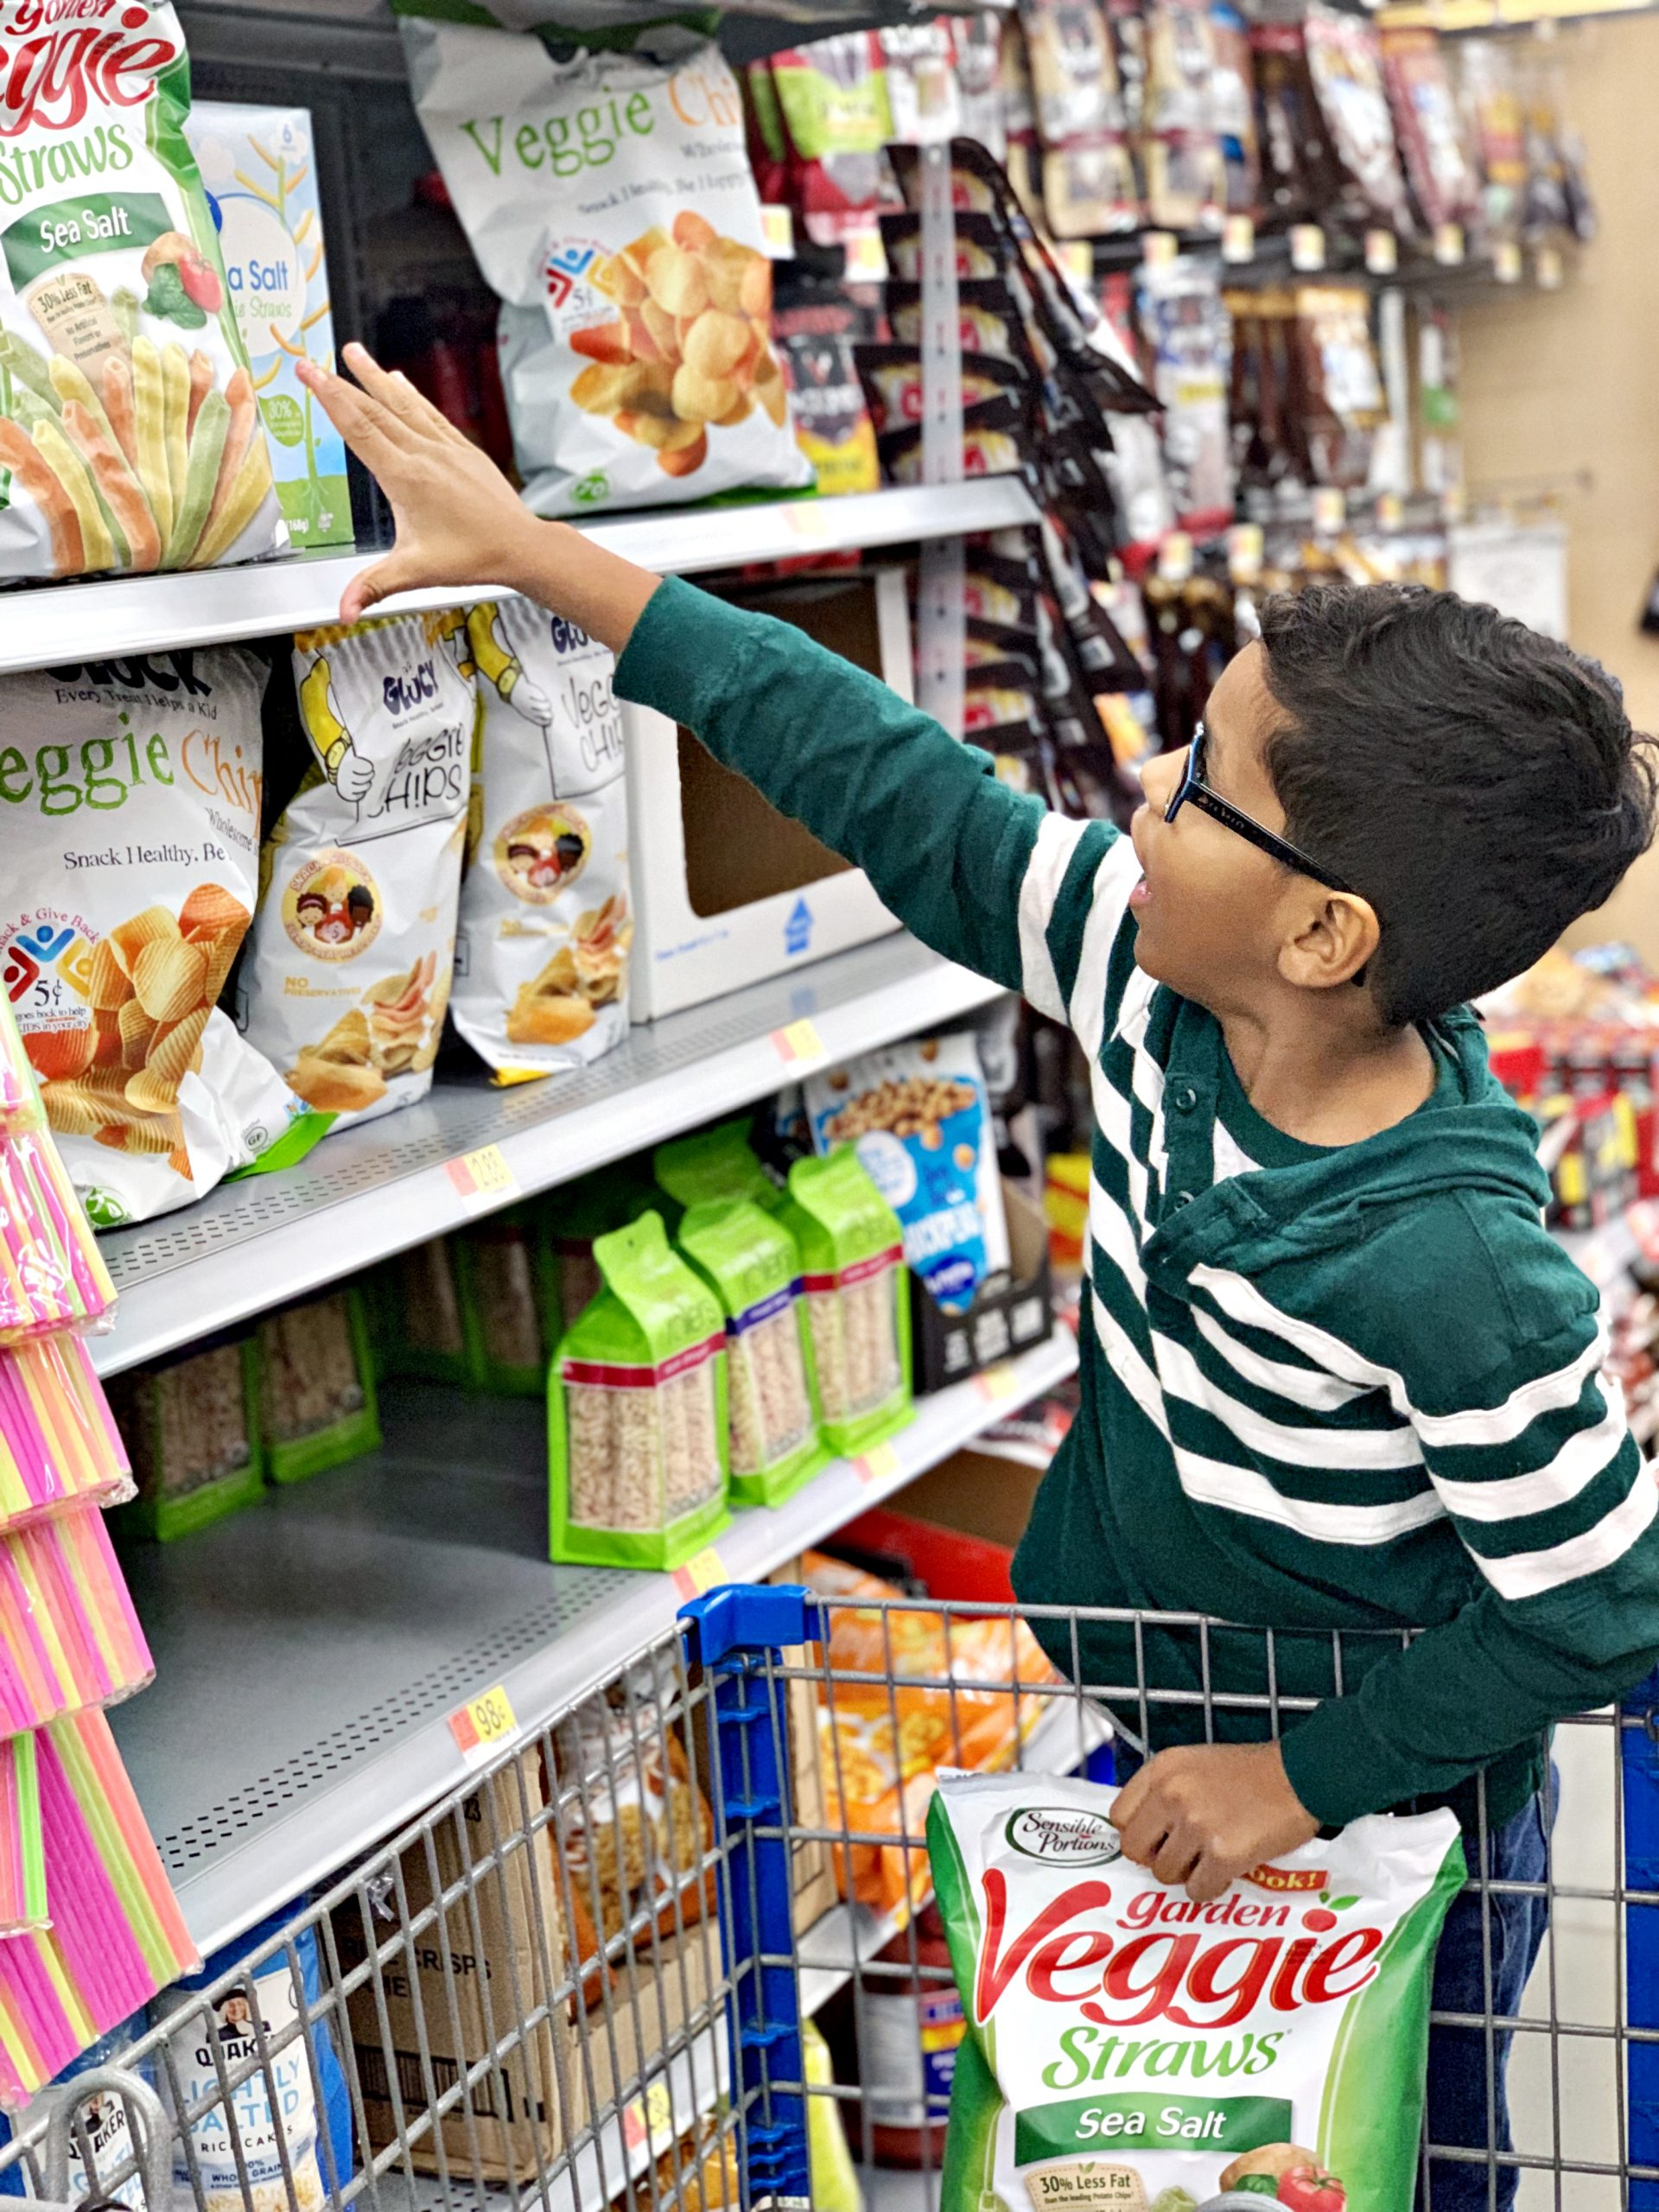 Boy reaching up for Sensible Portions® Garden Veggie Straws on the shelf at Walmart, while standing on a grocery cart, holding another bag.